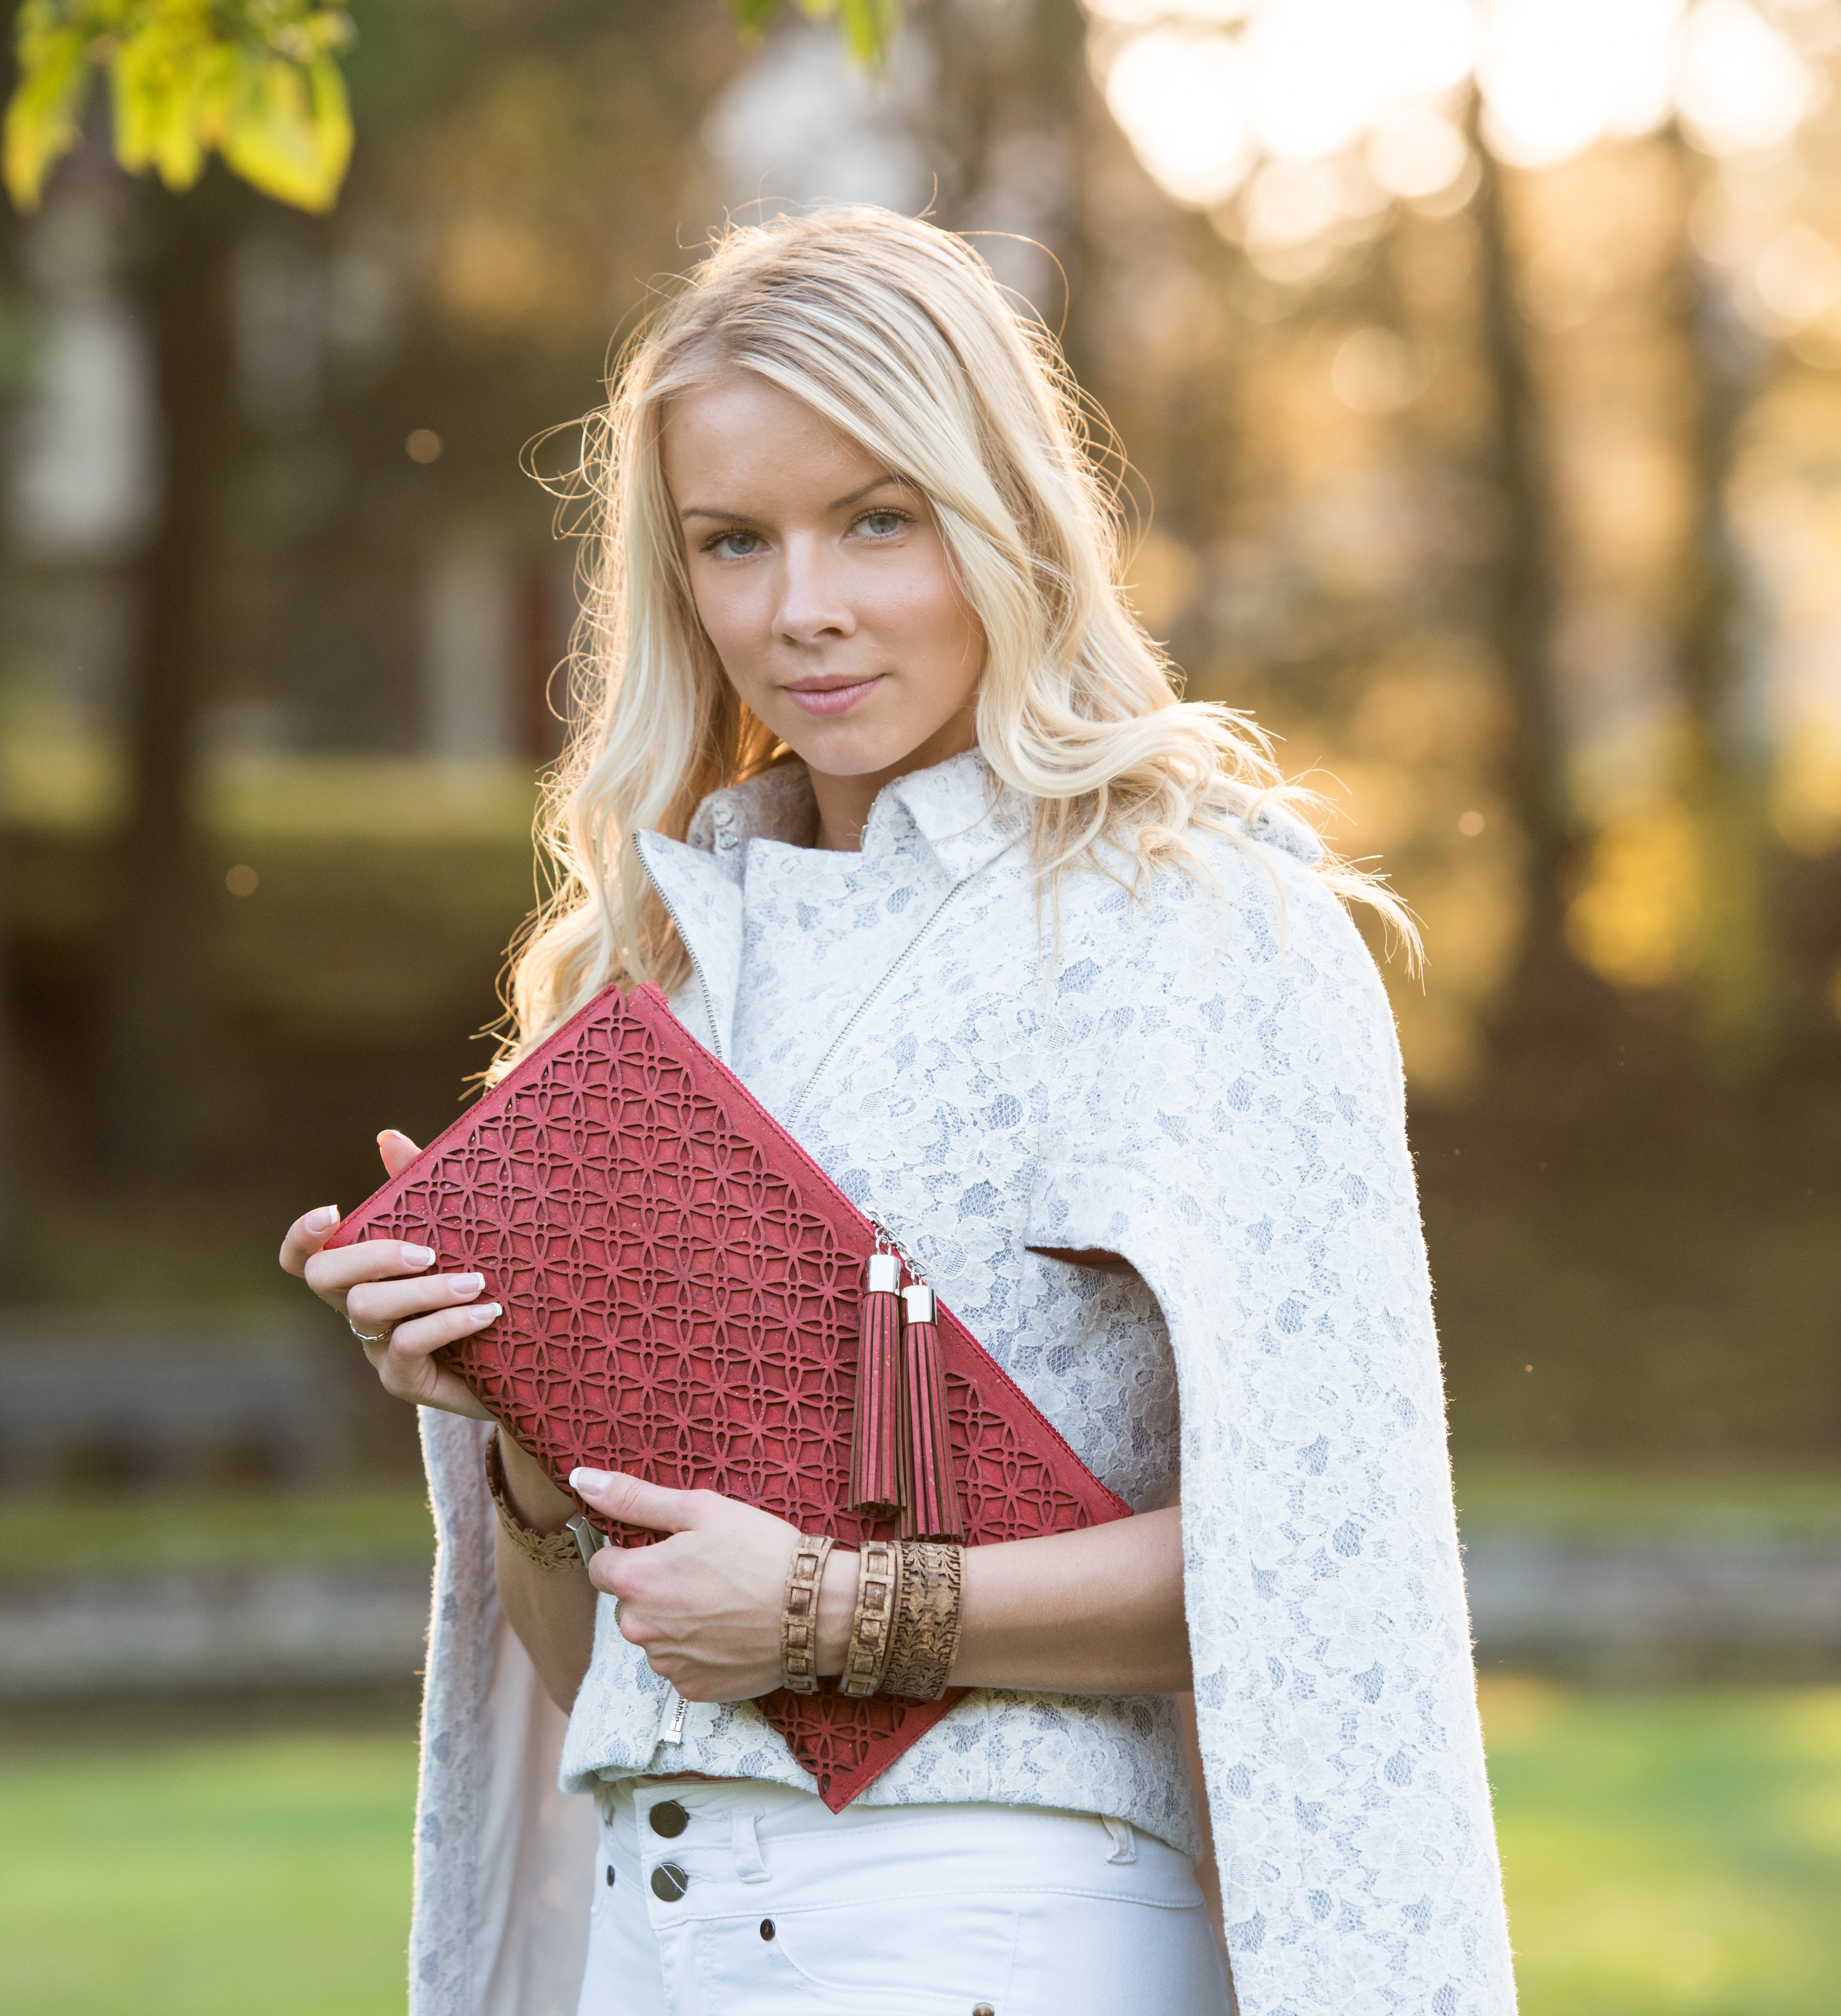 The Newest In Sustainable Style: Fashion Accessories Made From Cork